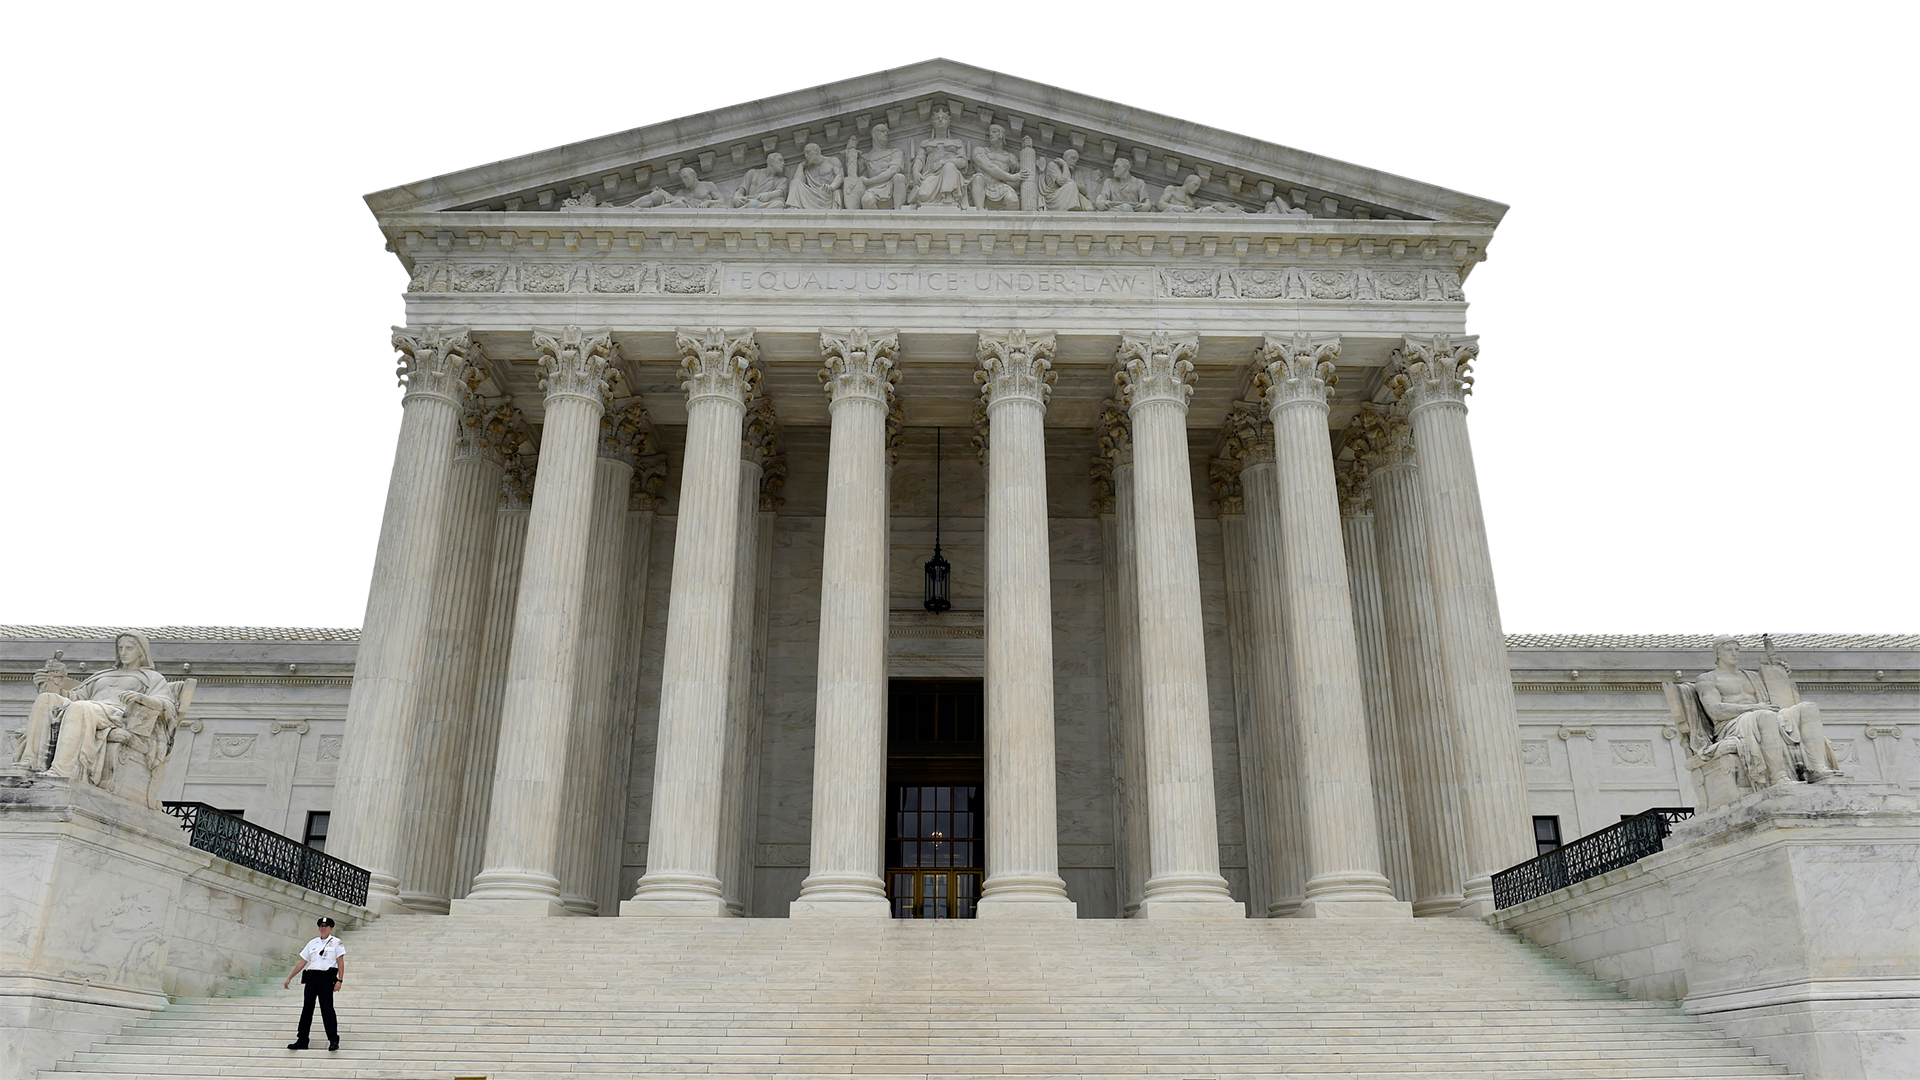 Supreme court house clipart clip art royalty free stock Chapter 14: THE COURTS on emaze clip art royalty free stock